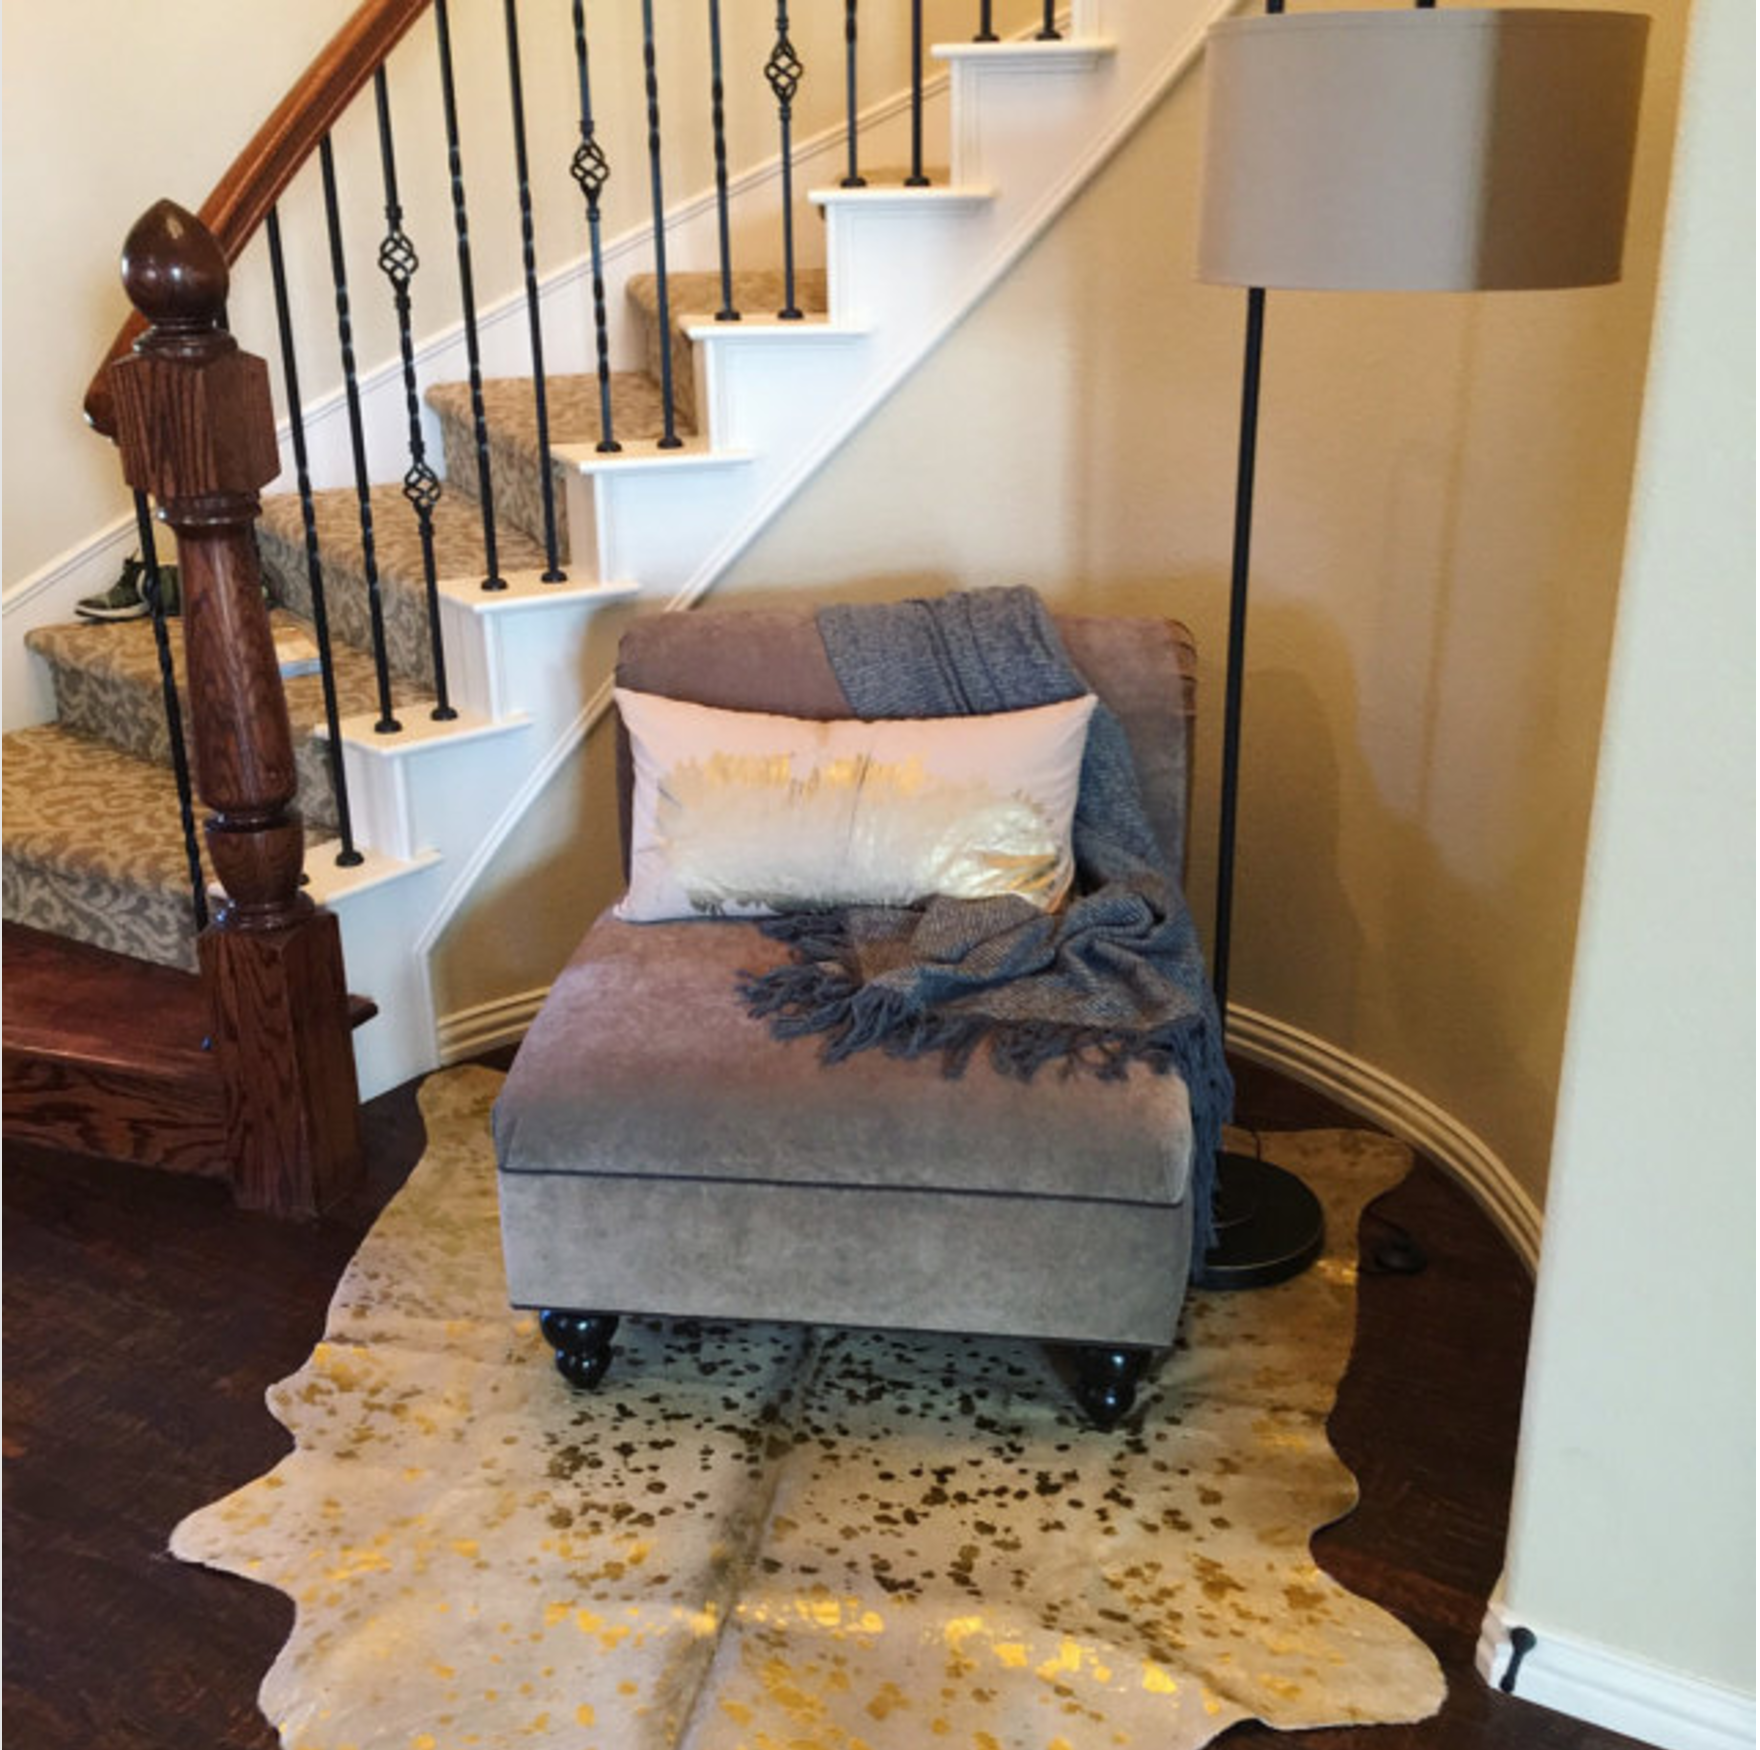 Jennifer Gentile From Texas Shares A Photo Of This 5x5 Feet Gold Metallic Cowhide Rug With Us What Nice Way To Decorate Small Corner